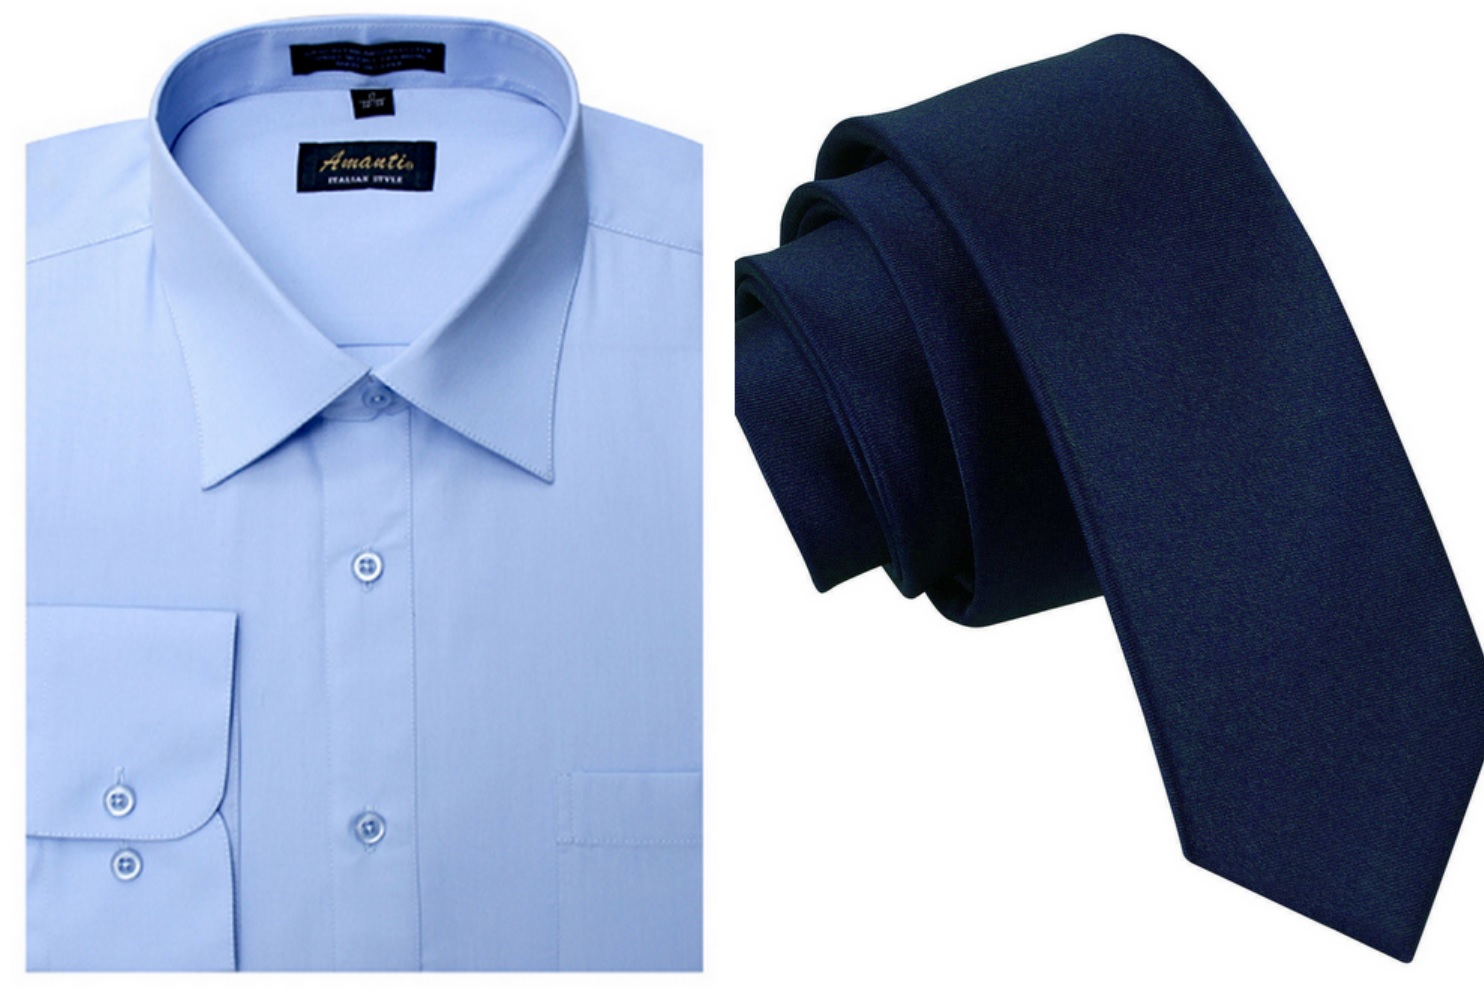 The shirt and tie combination that goes with every suit Blue suit shirt tie combinations